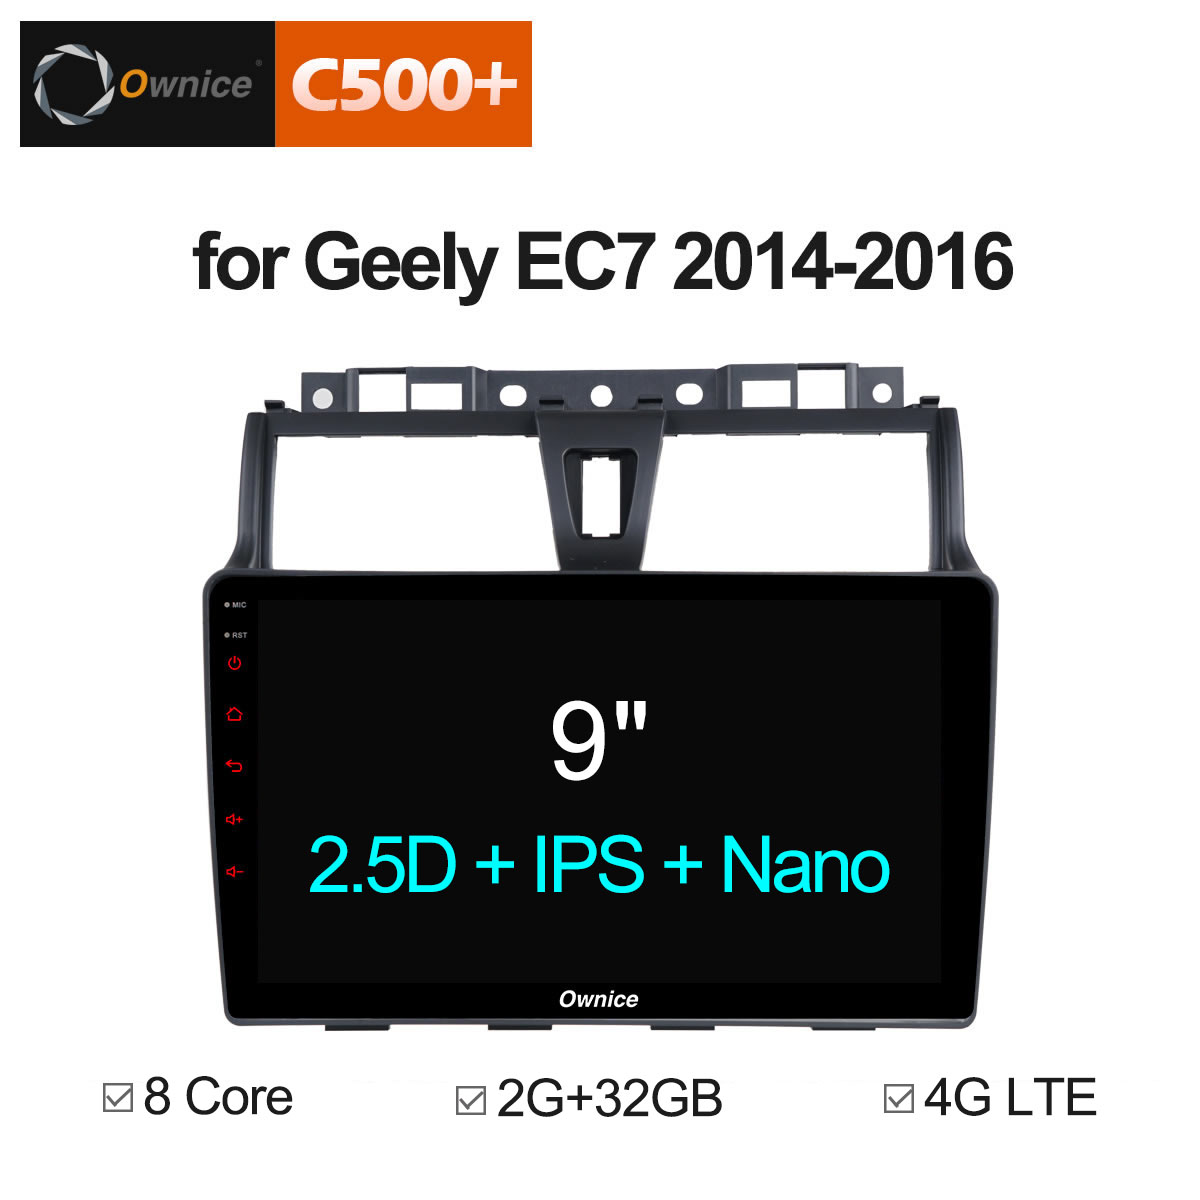 Ownice C500 + G10 android 8.1 Voiture radio audio dvd pour GEELY Emgrand EC7 2014-2016 GPS Navigation 8 core DAB + 4g LTE DVR